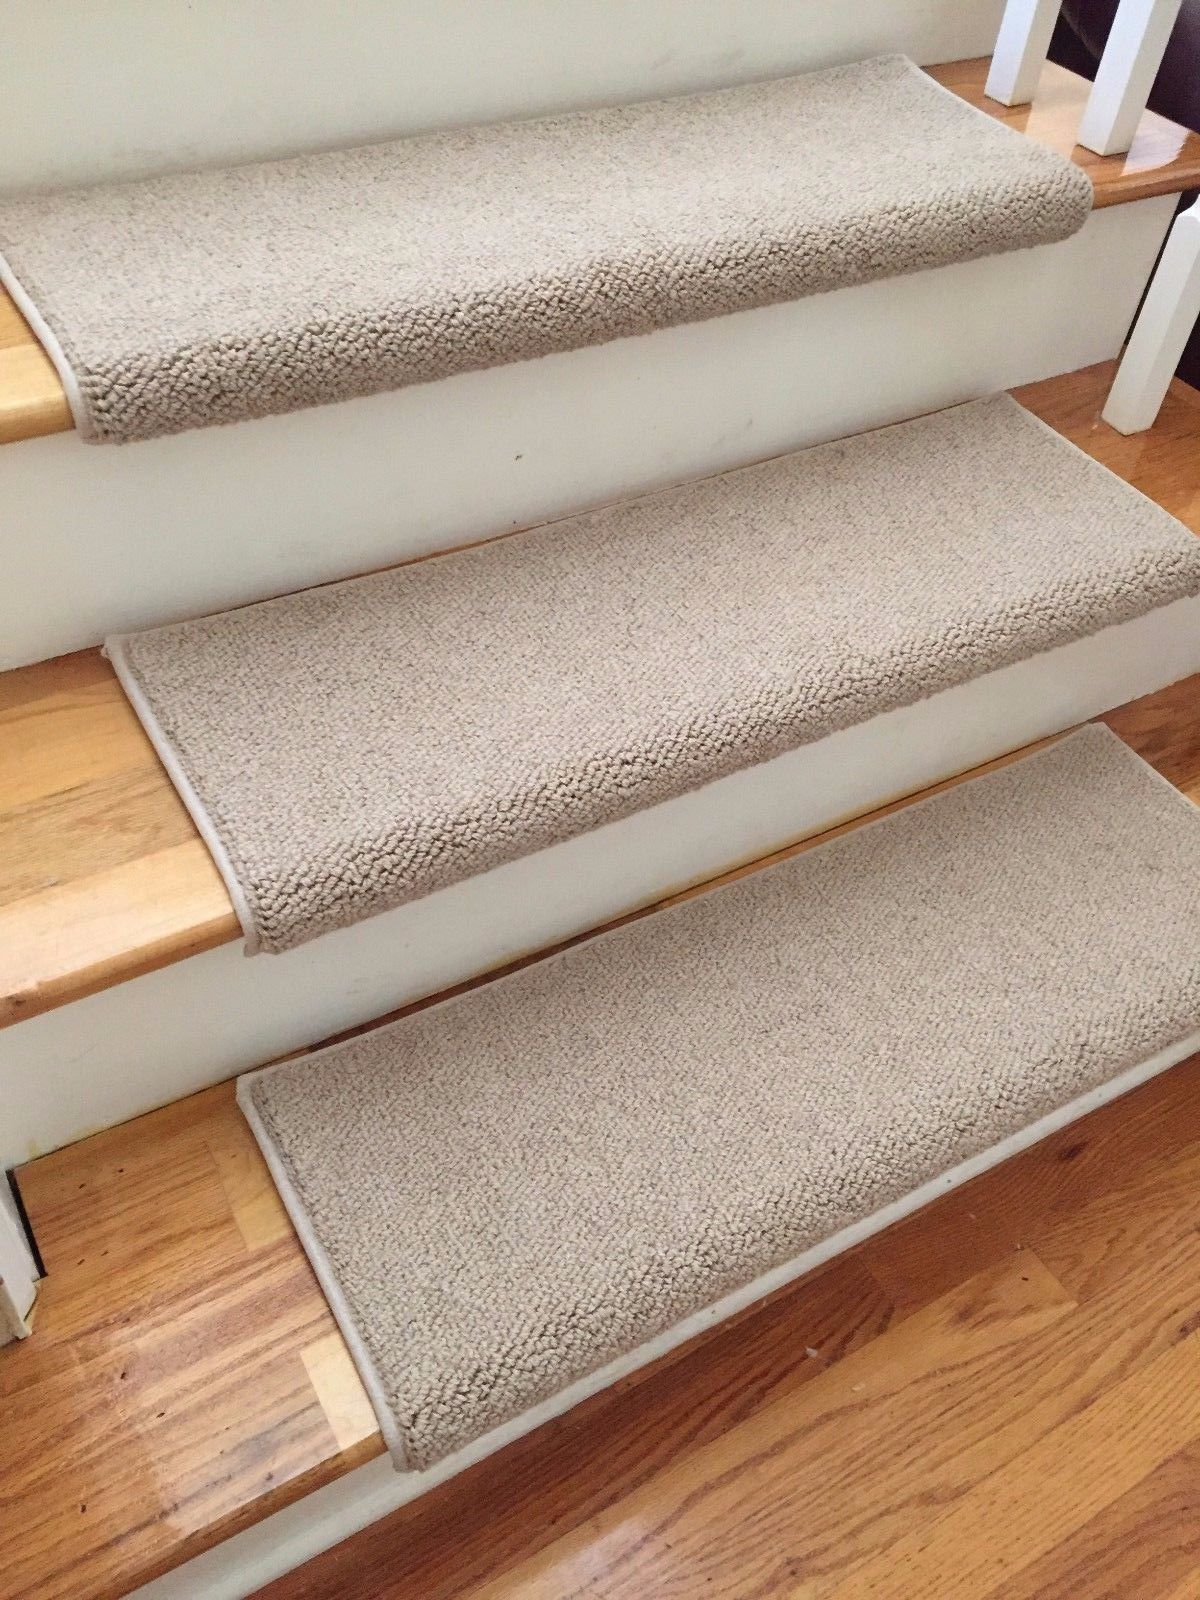 Tweed Linen Tan Ecco Tex Blend New Zealand Wool! TRUE Bullnose™ Carpet  Stair Tread Runner Replacement For Style, Comfort U0026 Safety(Sold Each)